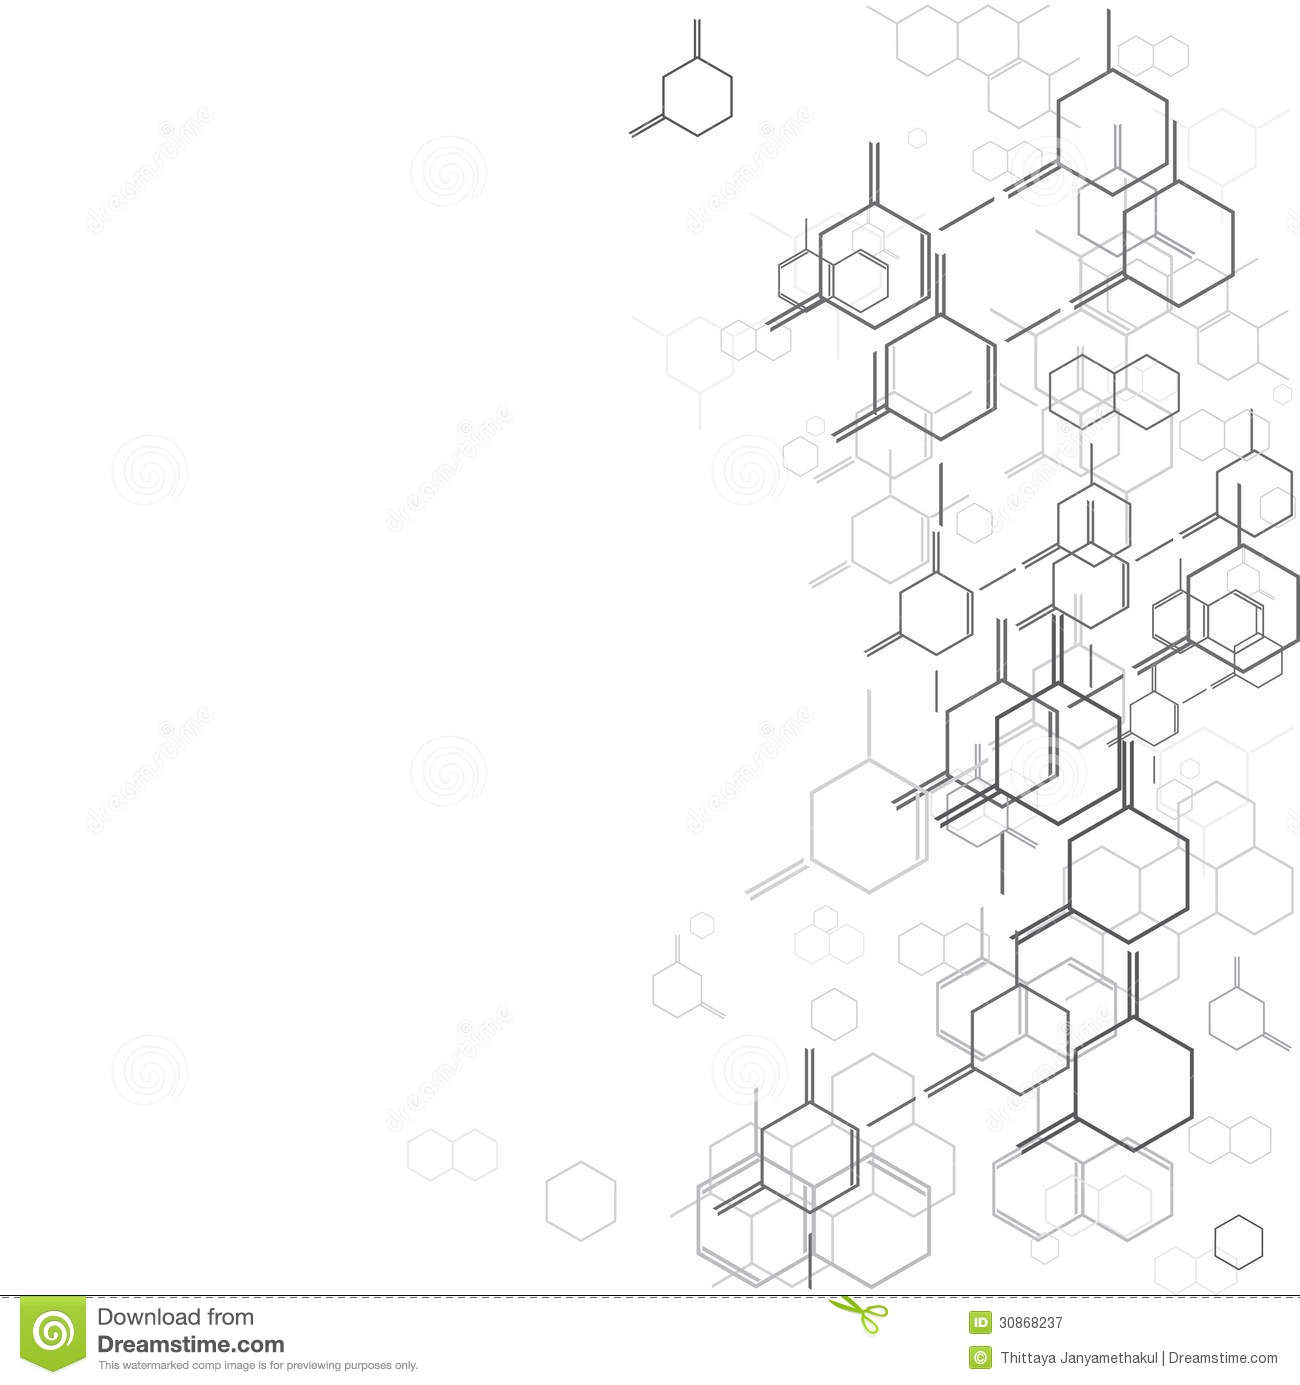 Chemistry Lab Sketch Set Vector 20104852 further Fun With Pictures   image Files dexter Coloring Page in addition Triangles Pattern Photo further Royalty Free Stock Photography Molecular Background Pattern Can Be Apply Image30868237 moreover Dexter S Mom 435060451. on laboratory wallpaper